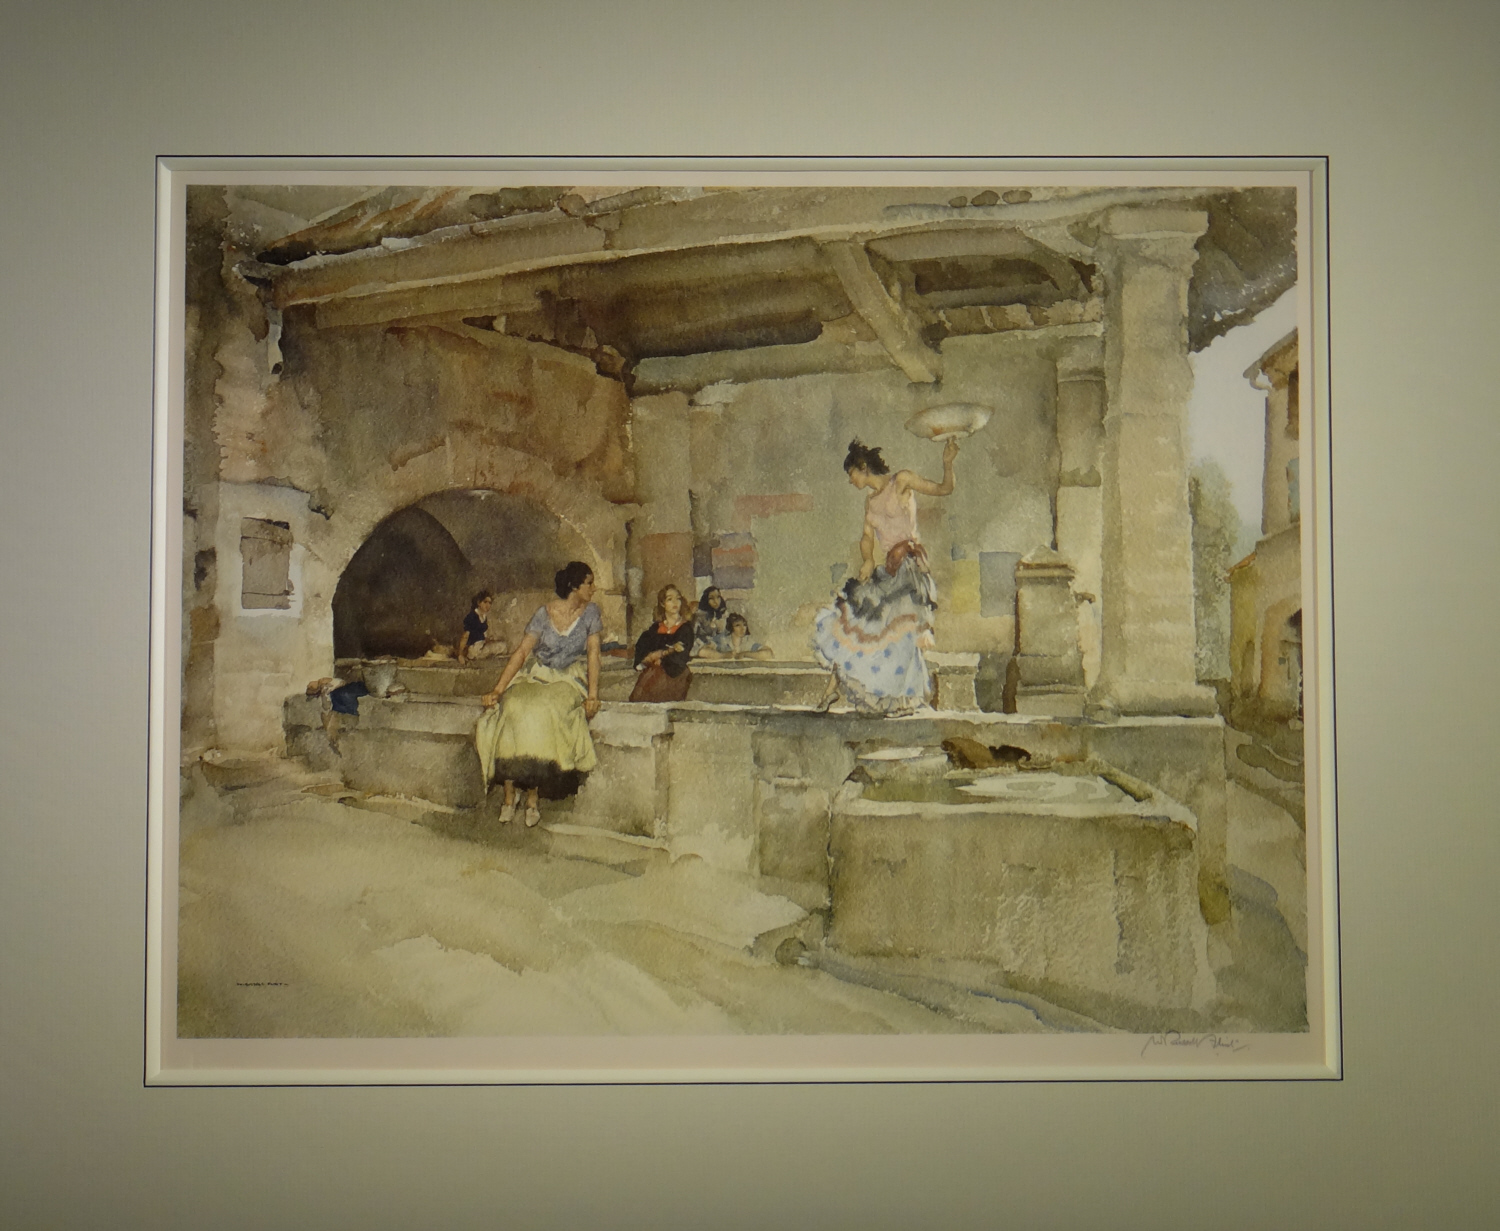 russell flint, provencal caprice, signed limited edition print